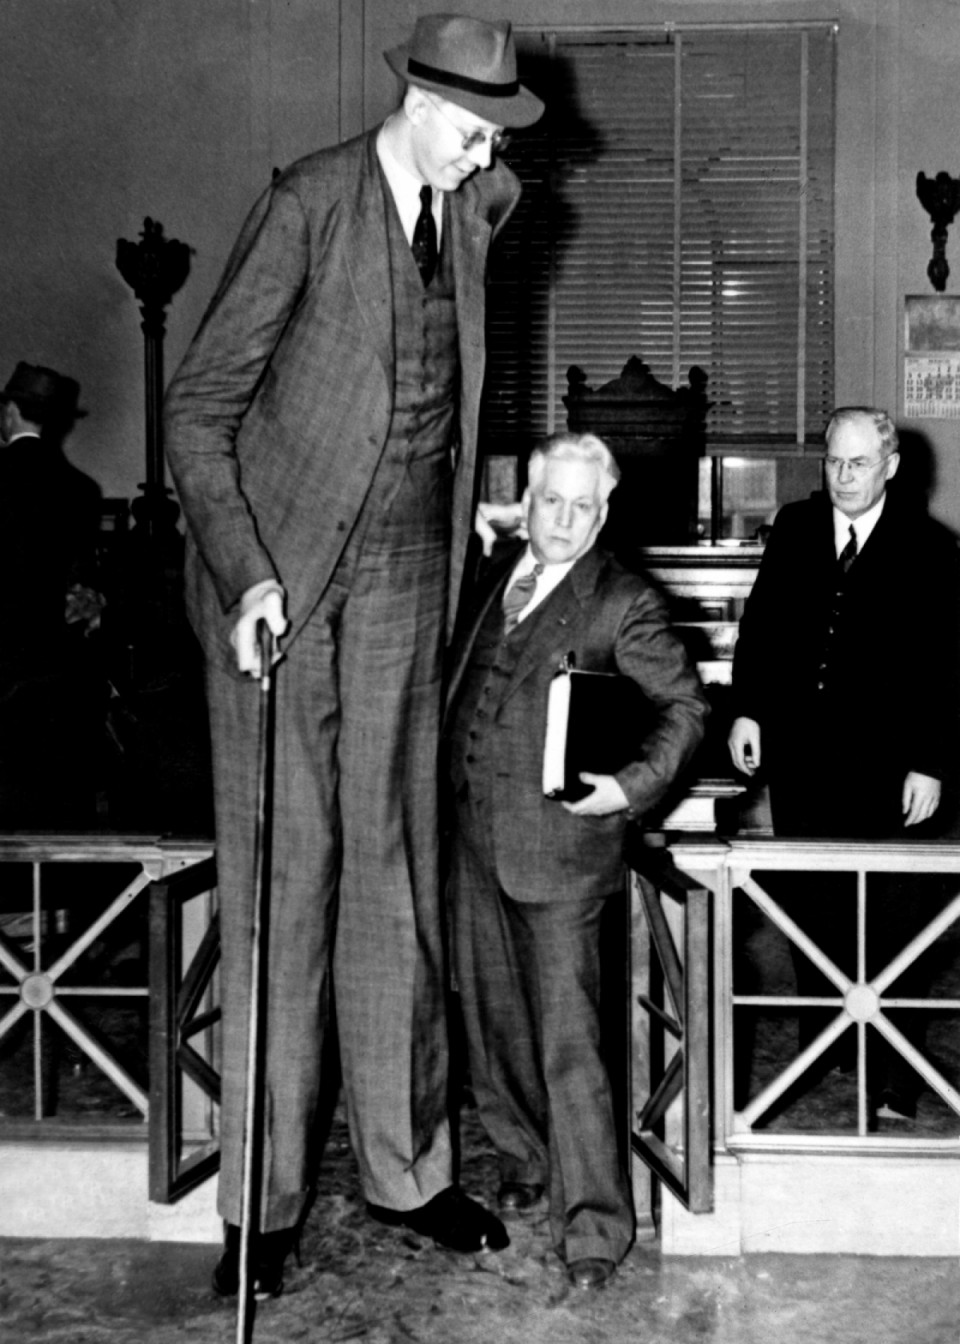 robert wadlow canne